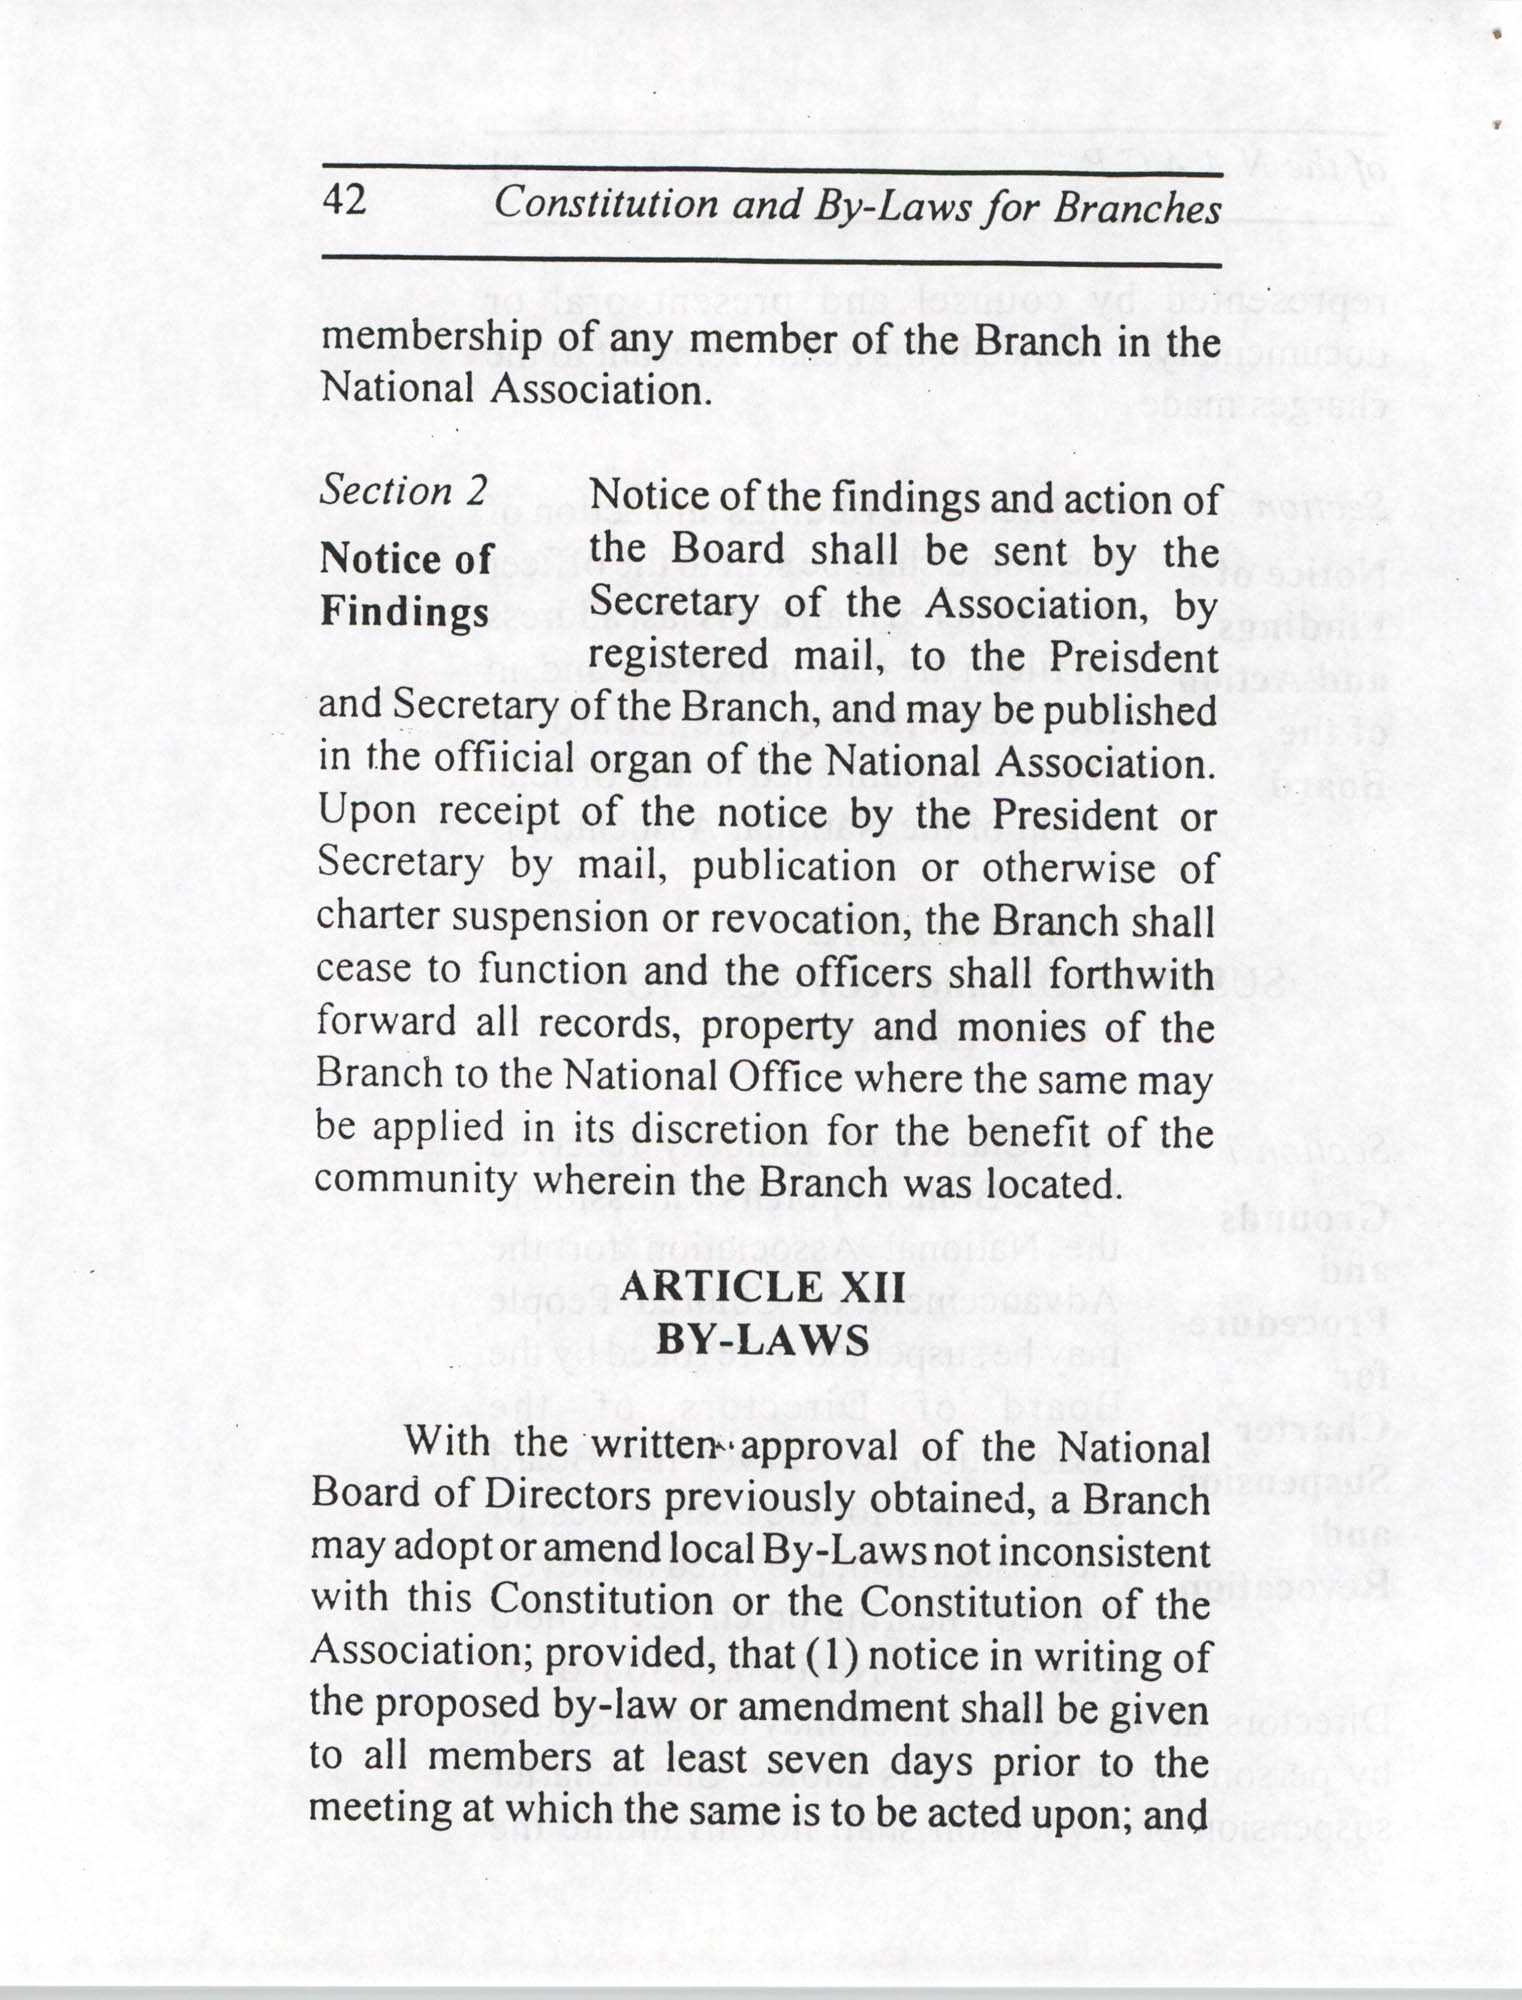 Constitution and By-Laws for Branches of the NAACP, July 1994, Page 42